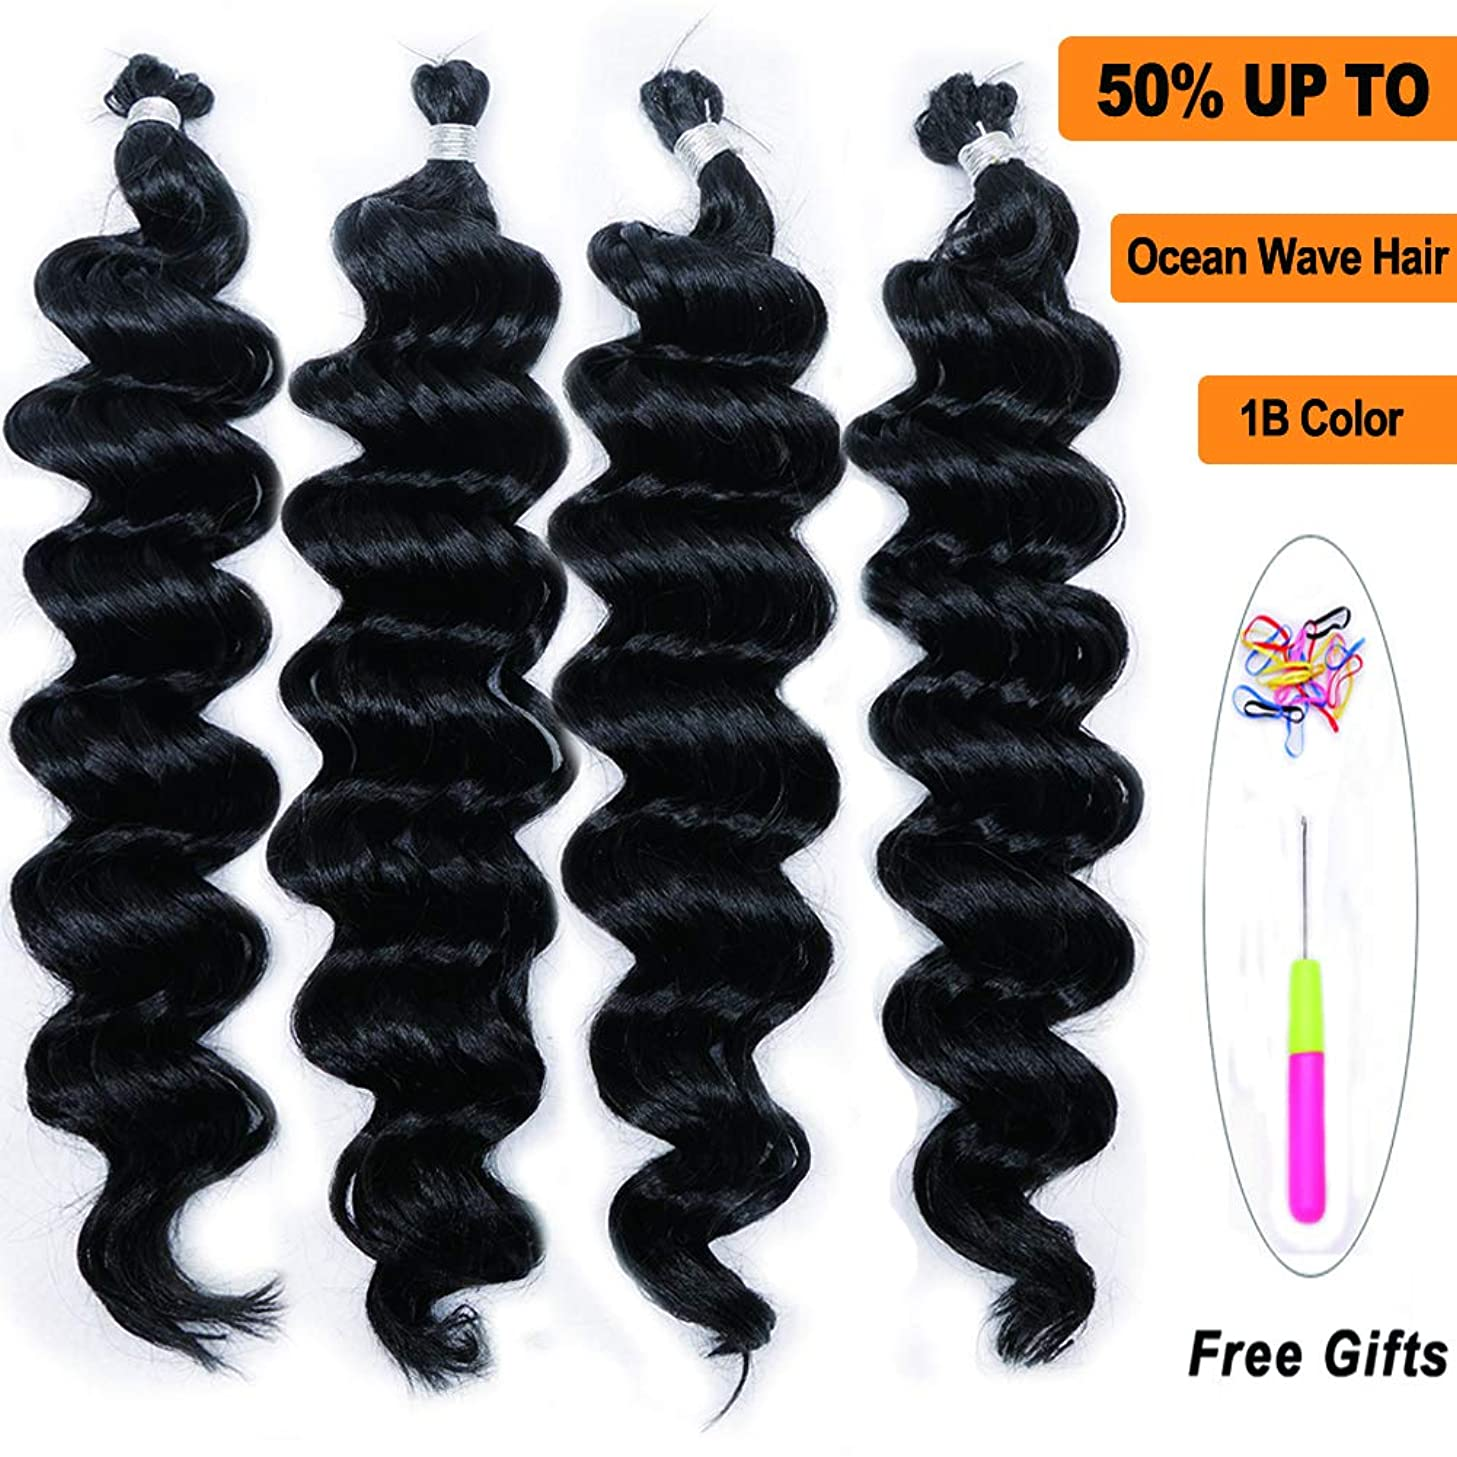 Ocean Wave Synthetic Hair 4 Bundles 18Inch Andromeda Natural Black Wavy Water Weave Deep Ripple Crochet Braids Fiber Hair Extensions with 1 Free Crochet (1B)